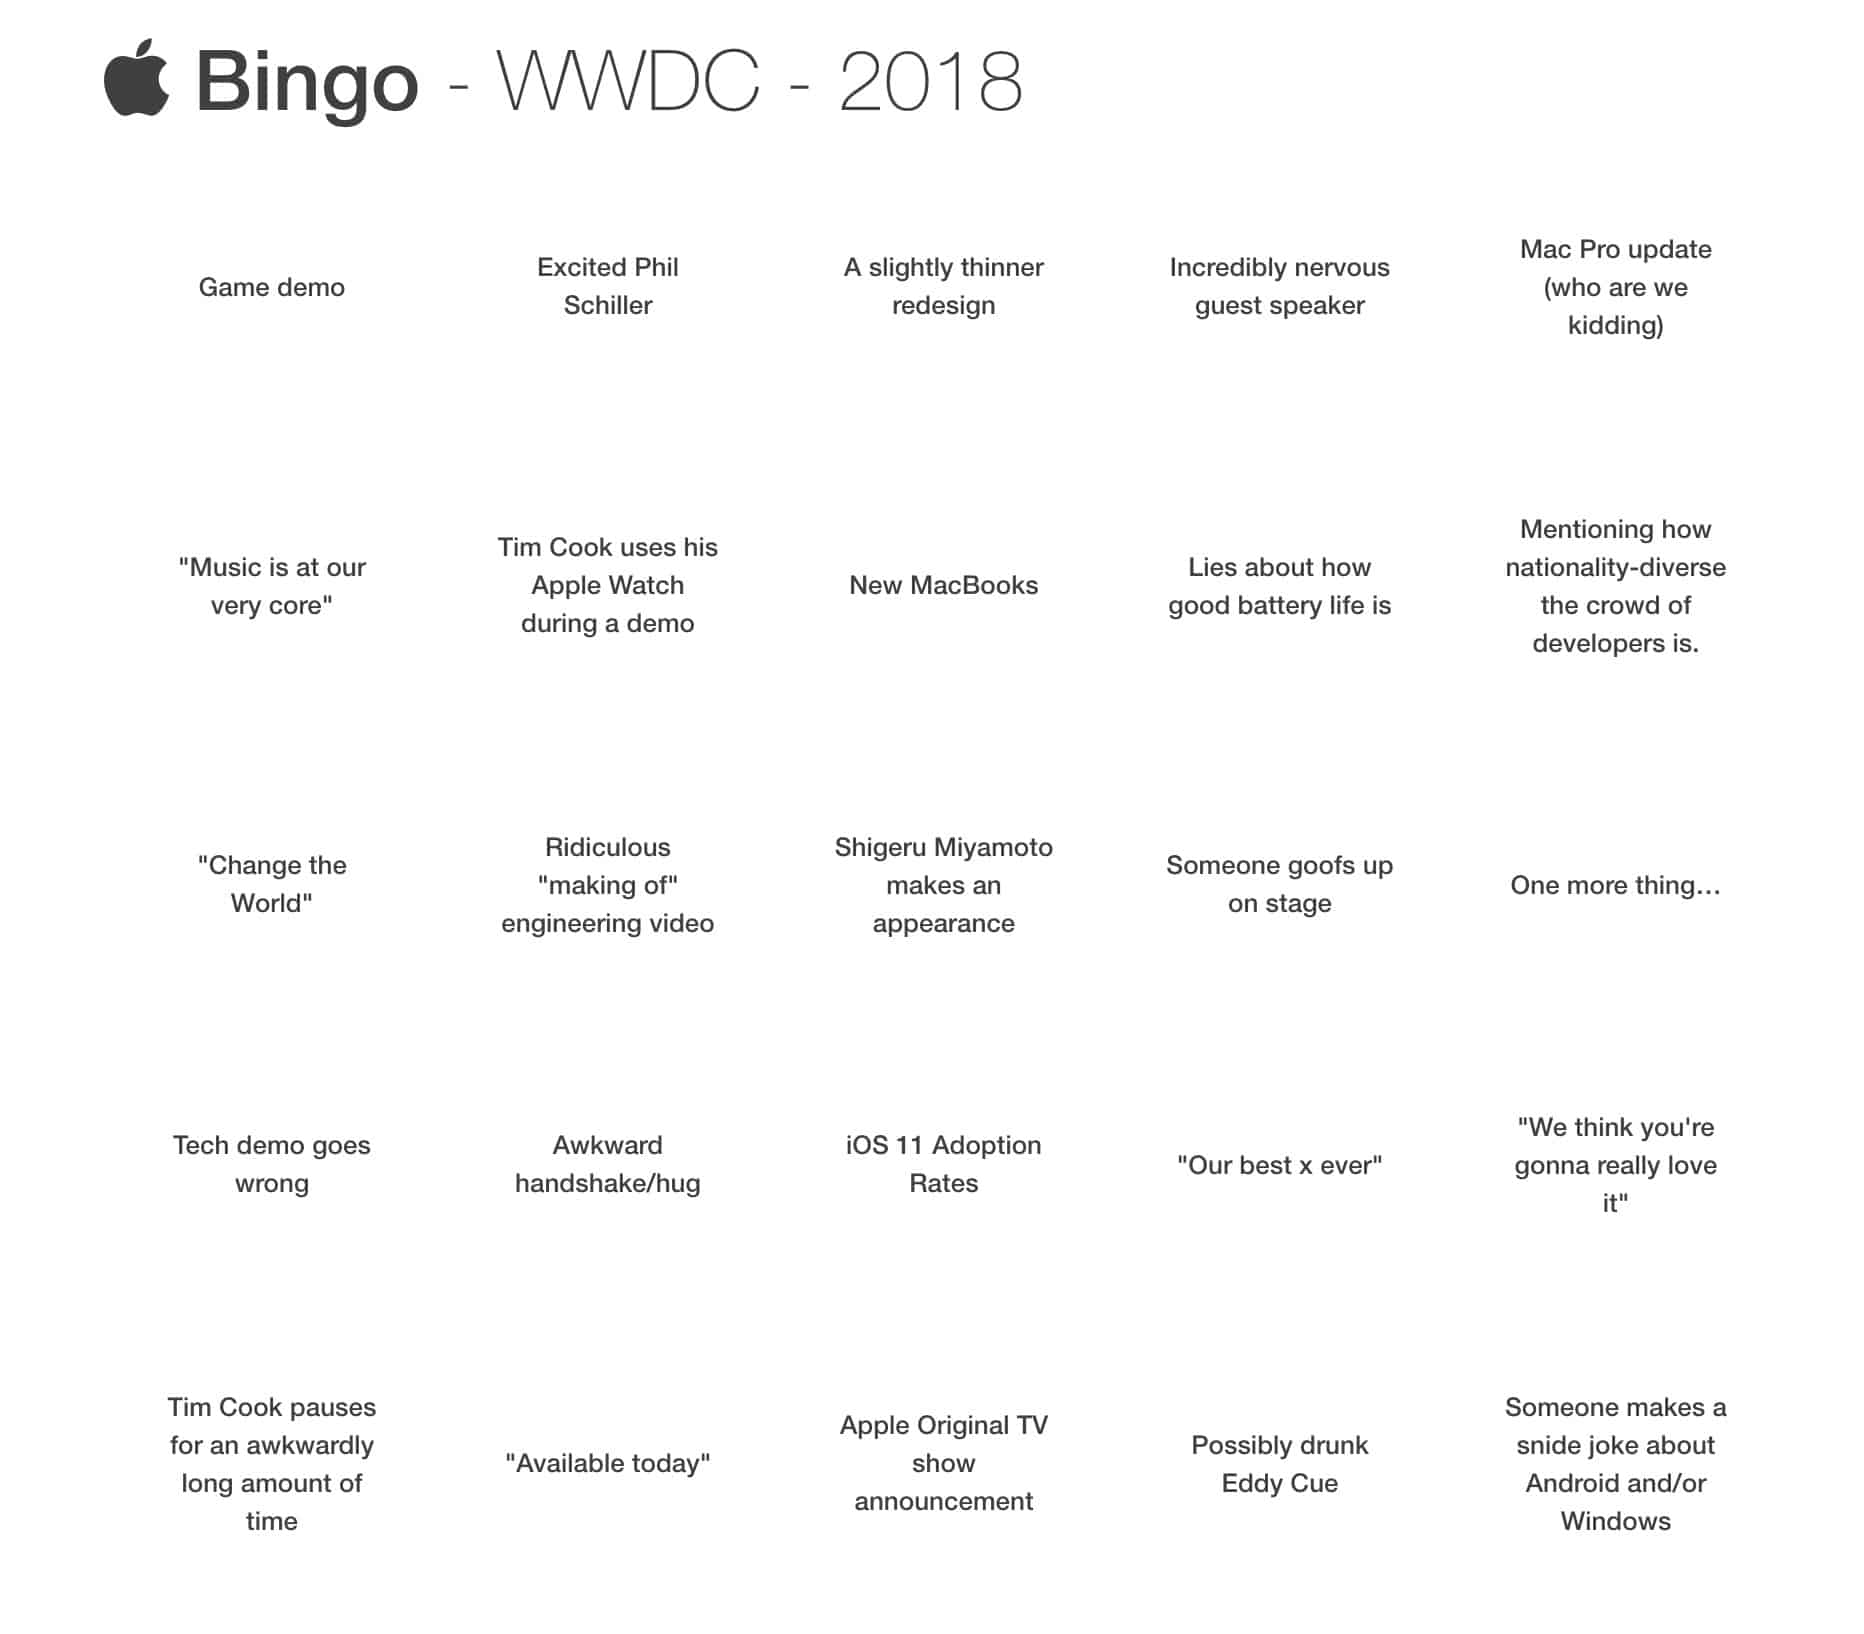 WWDC 2018: Will there be any new hardware reveals?